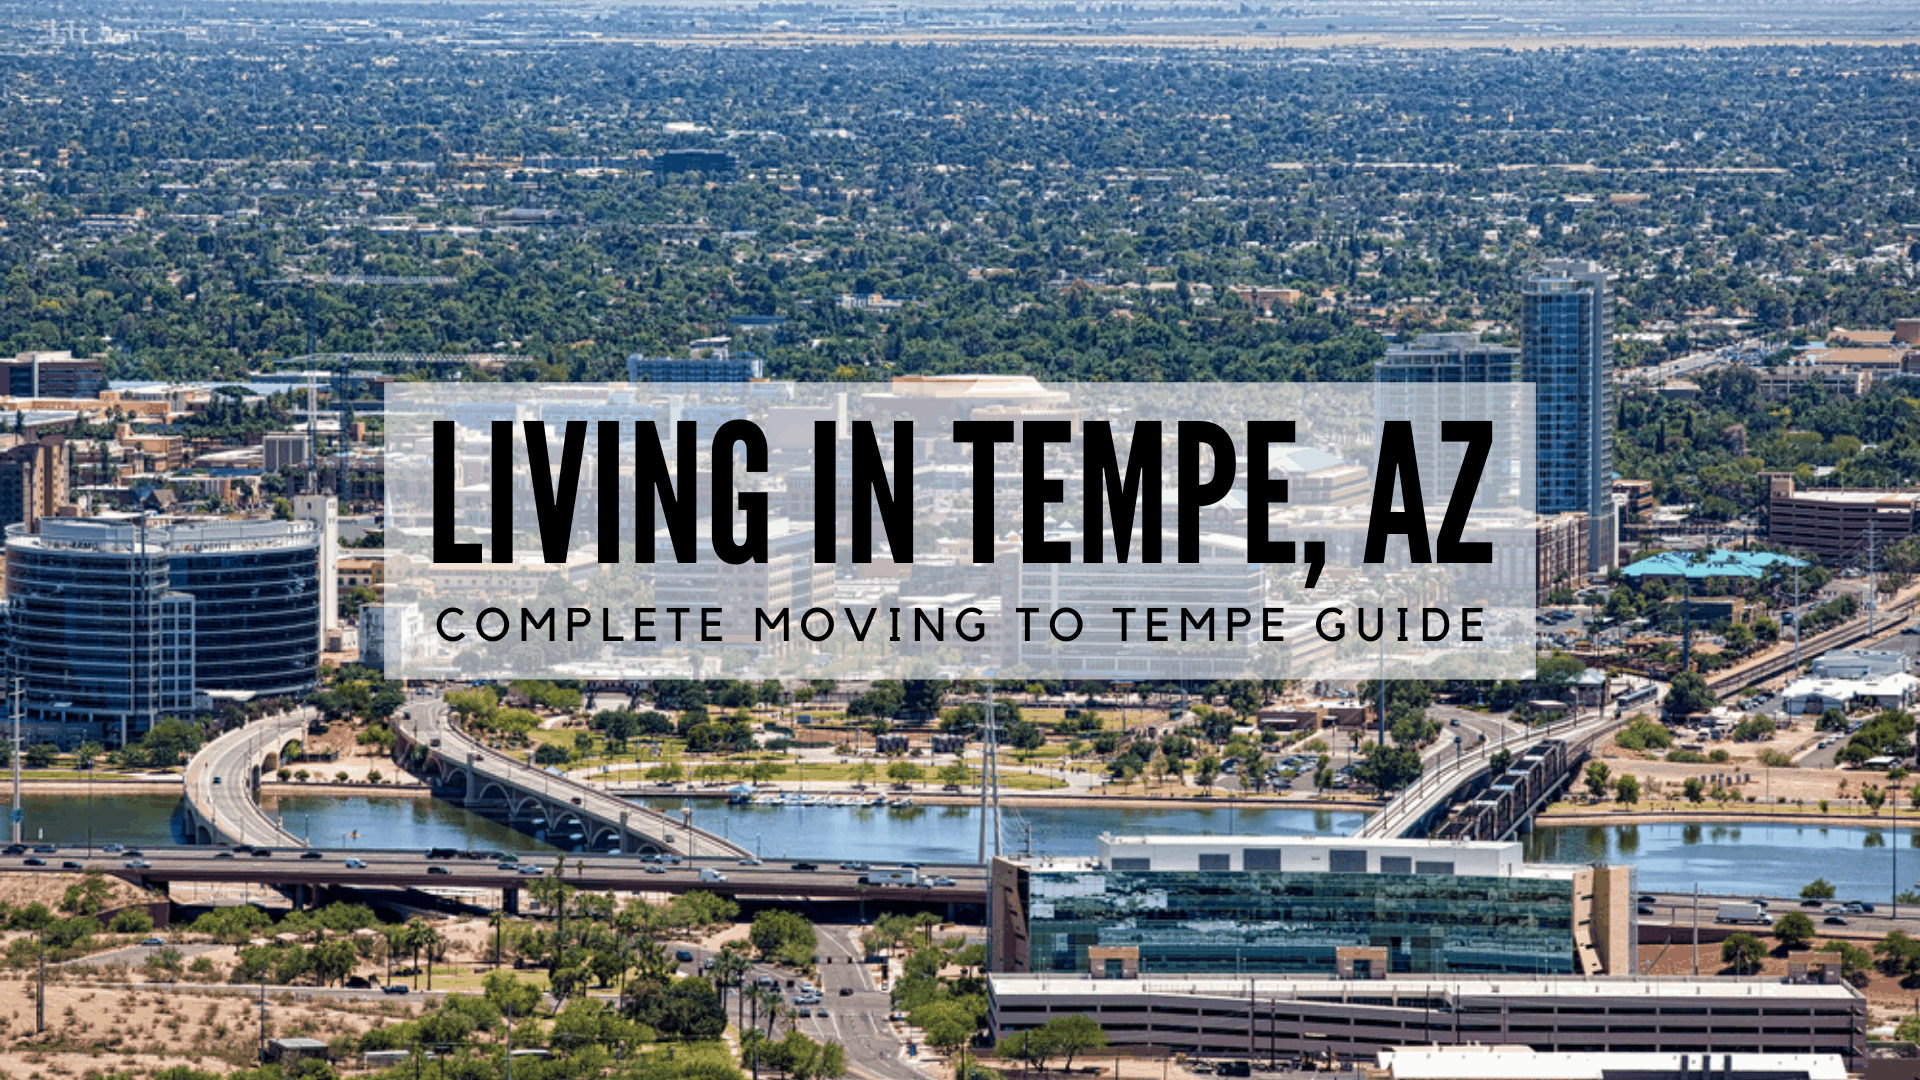 Living in Tempe, AZ - Complete Moving to Tempe Guide